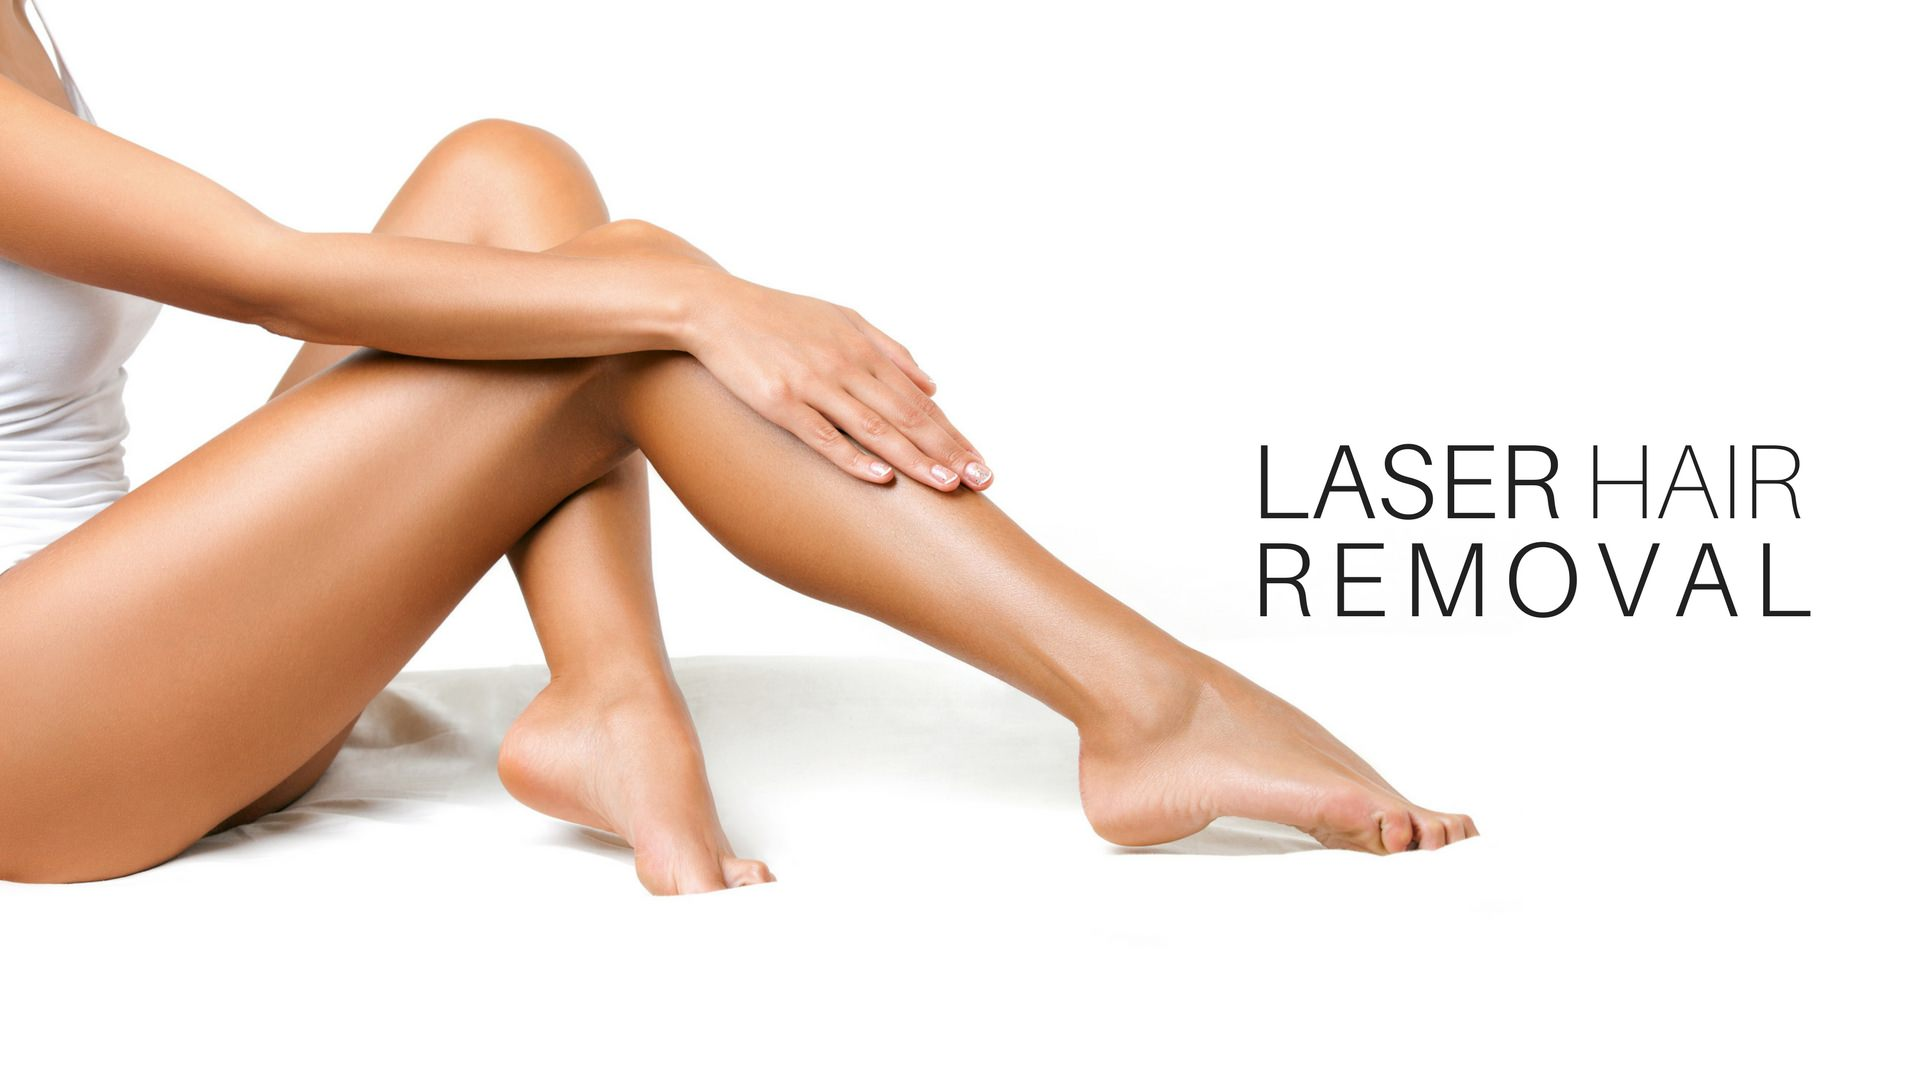 Best Laser Hair Removal in London? Pulse Light Clinic